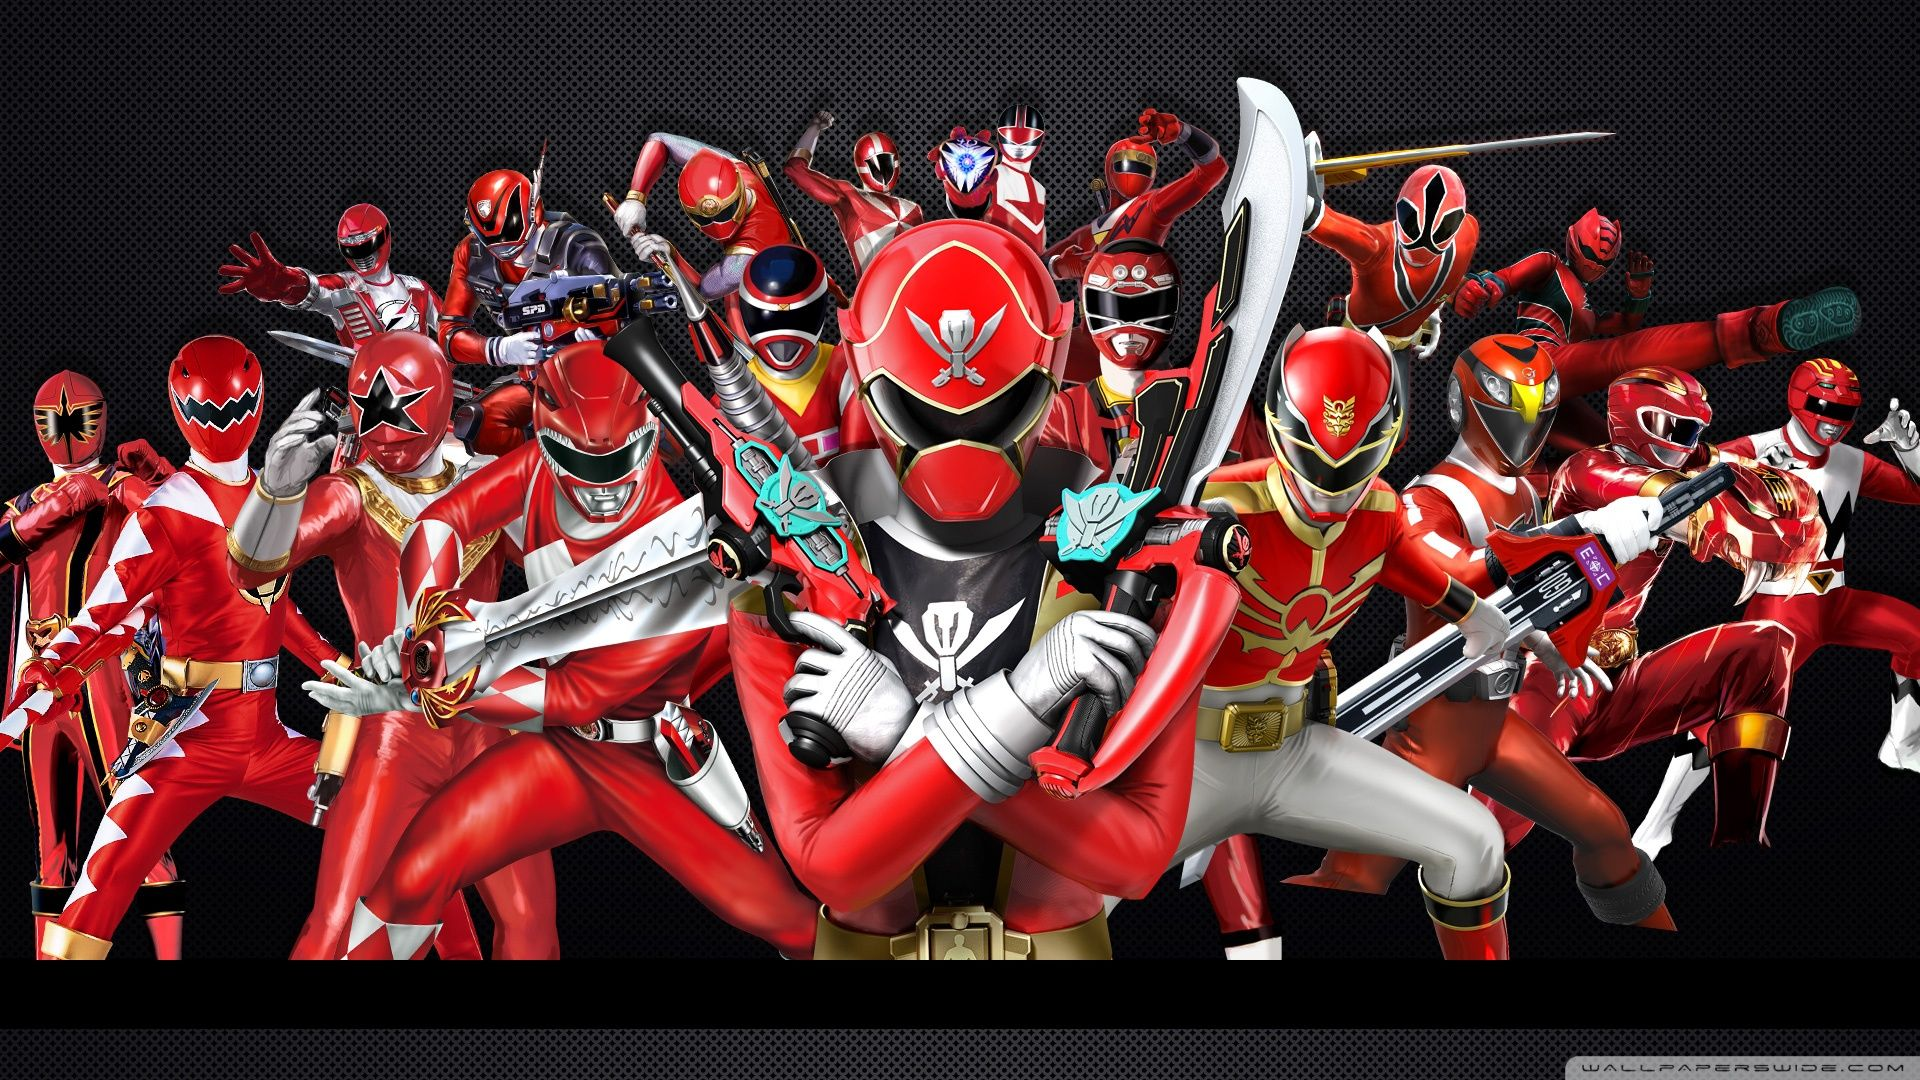 undefined Power Rangers Backgrounds  38 Wallpapers    Adorable Wallpapers. undefined Power Rangers Backgrounds  38 Wallpapers    Adorable